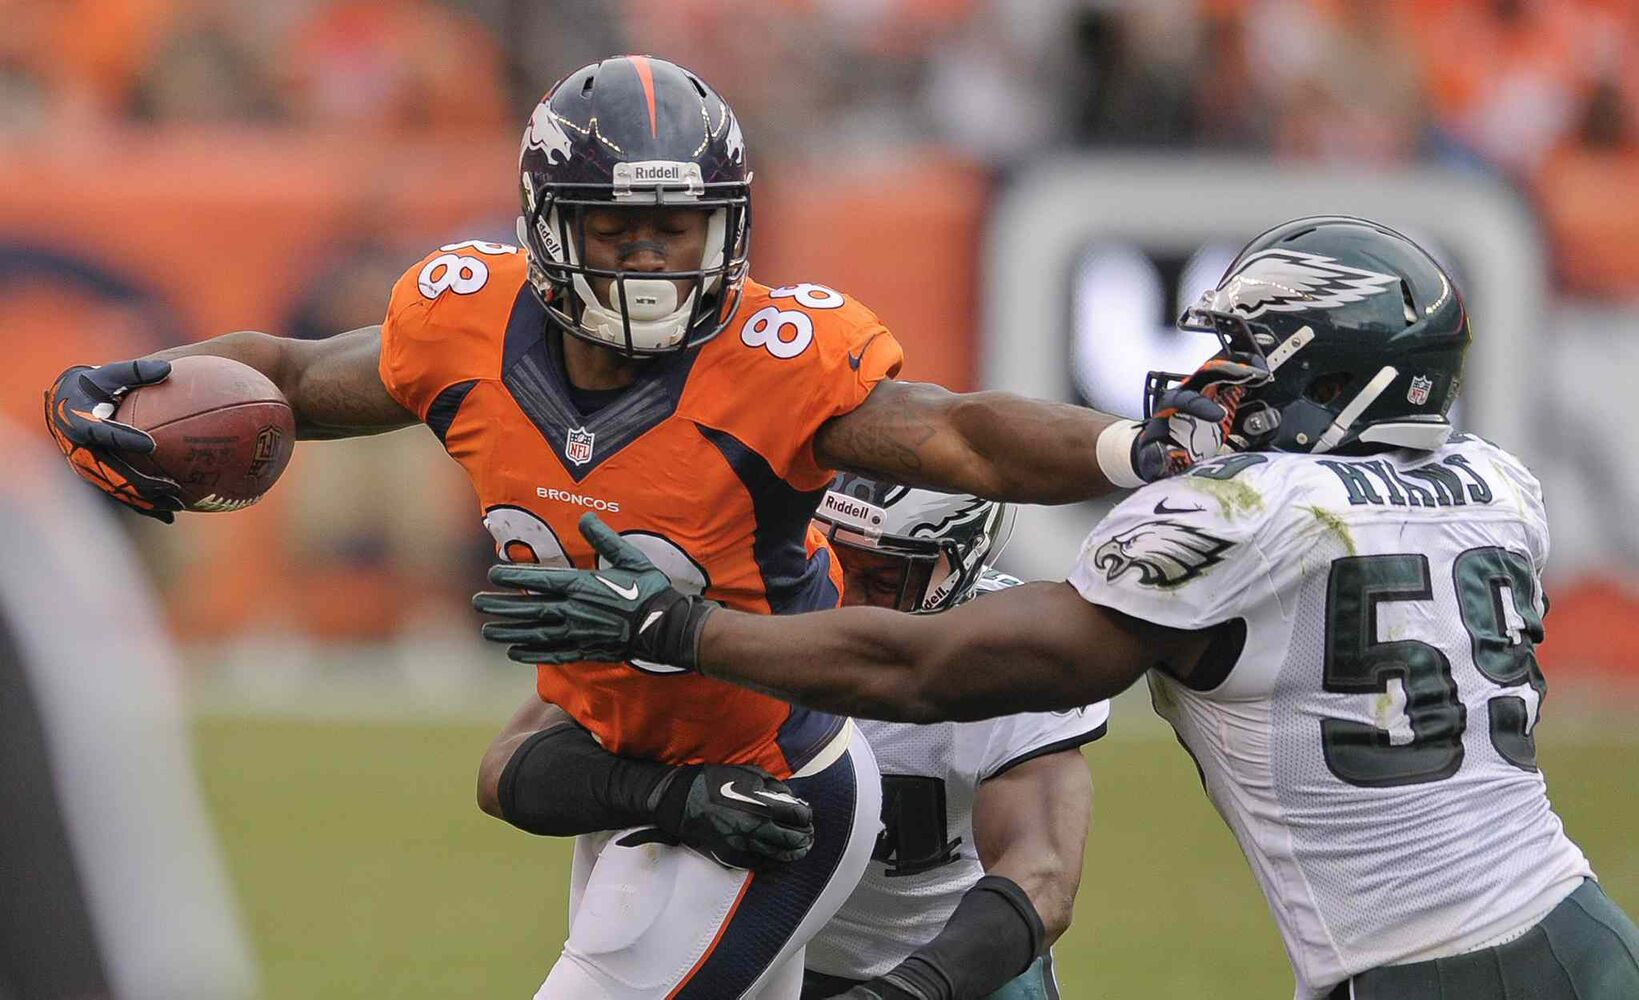 Denver Broncos wide receiver Demaryius Thomas (left) stiff arms Philadelphia Eagles linebacker DeMeco Ryans during the Broncos 52-20 win in Denver on Sunday. (Jack Dempsey / The Associated Press)